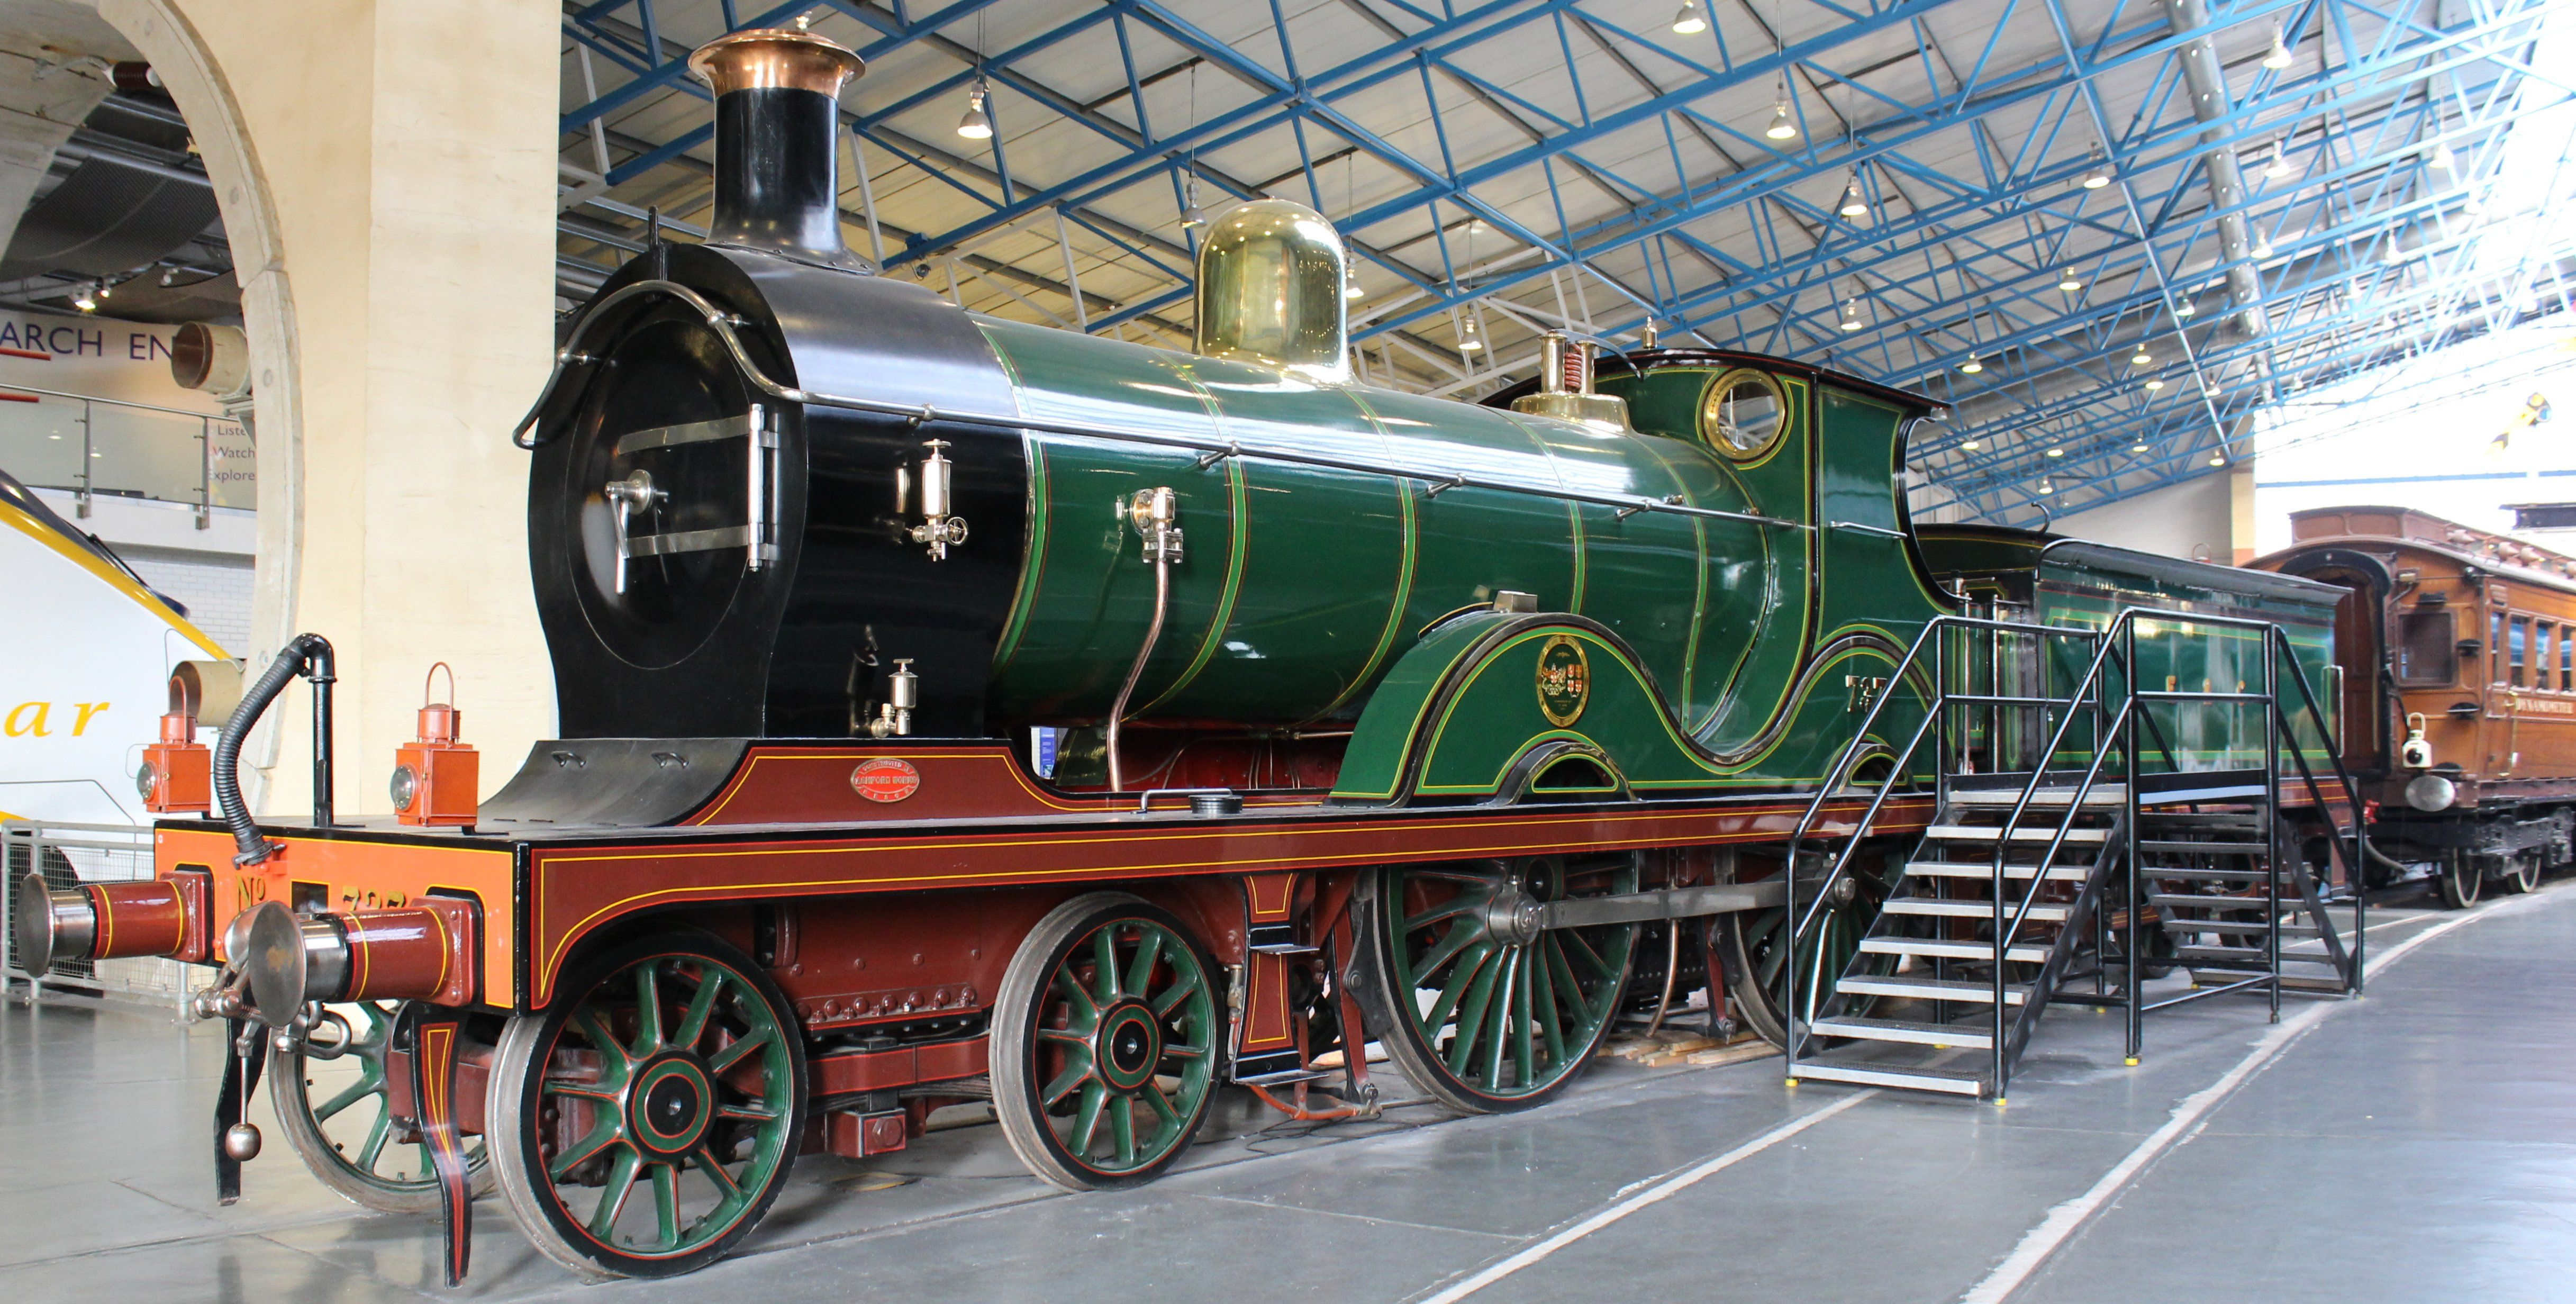 the national railway museums d class number 737 of 1901 is the last survivor of a